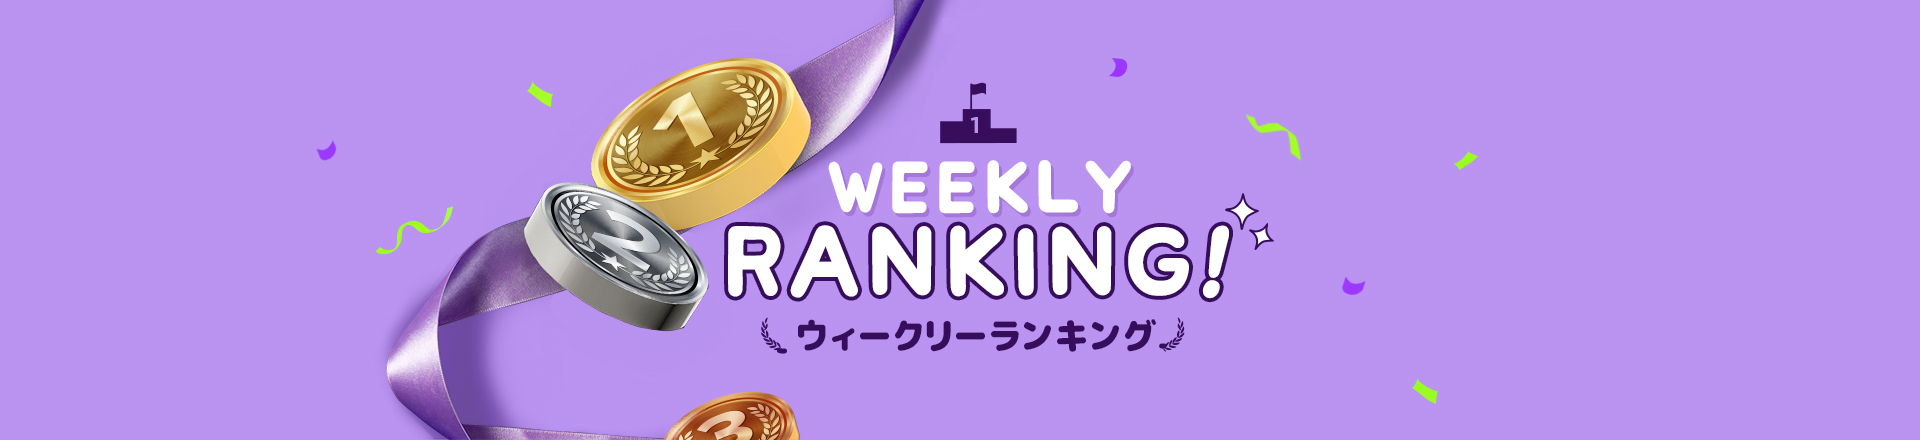 Weekly Ranking